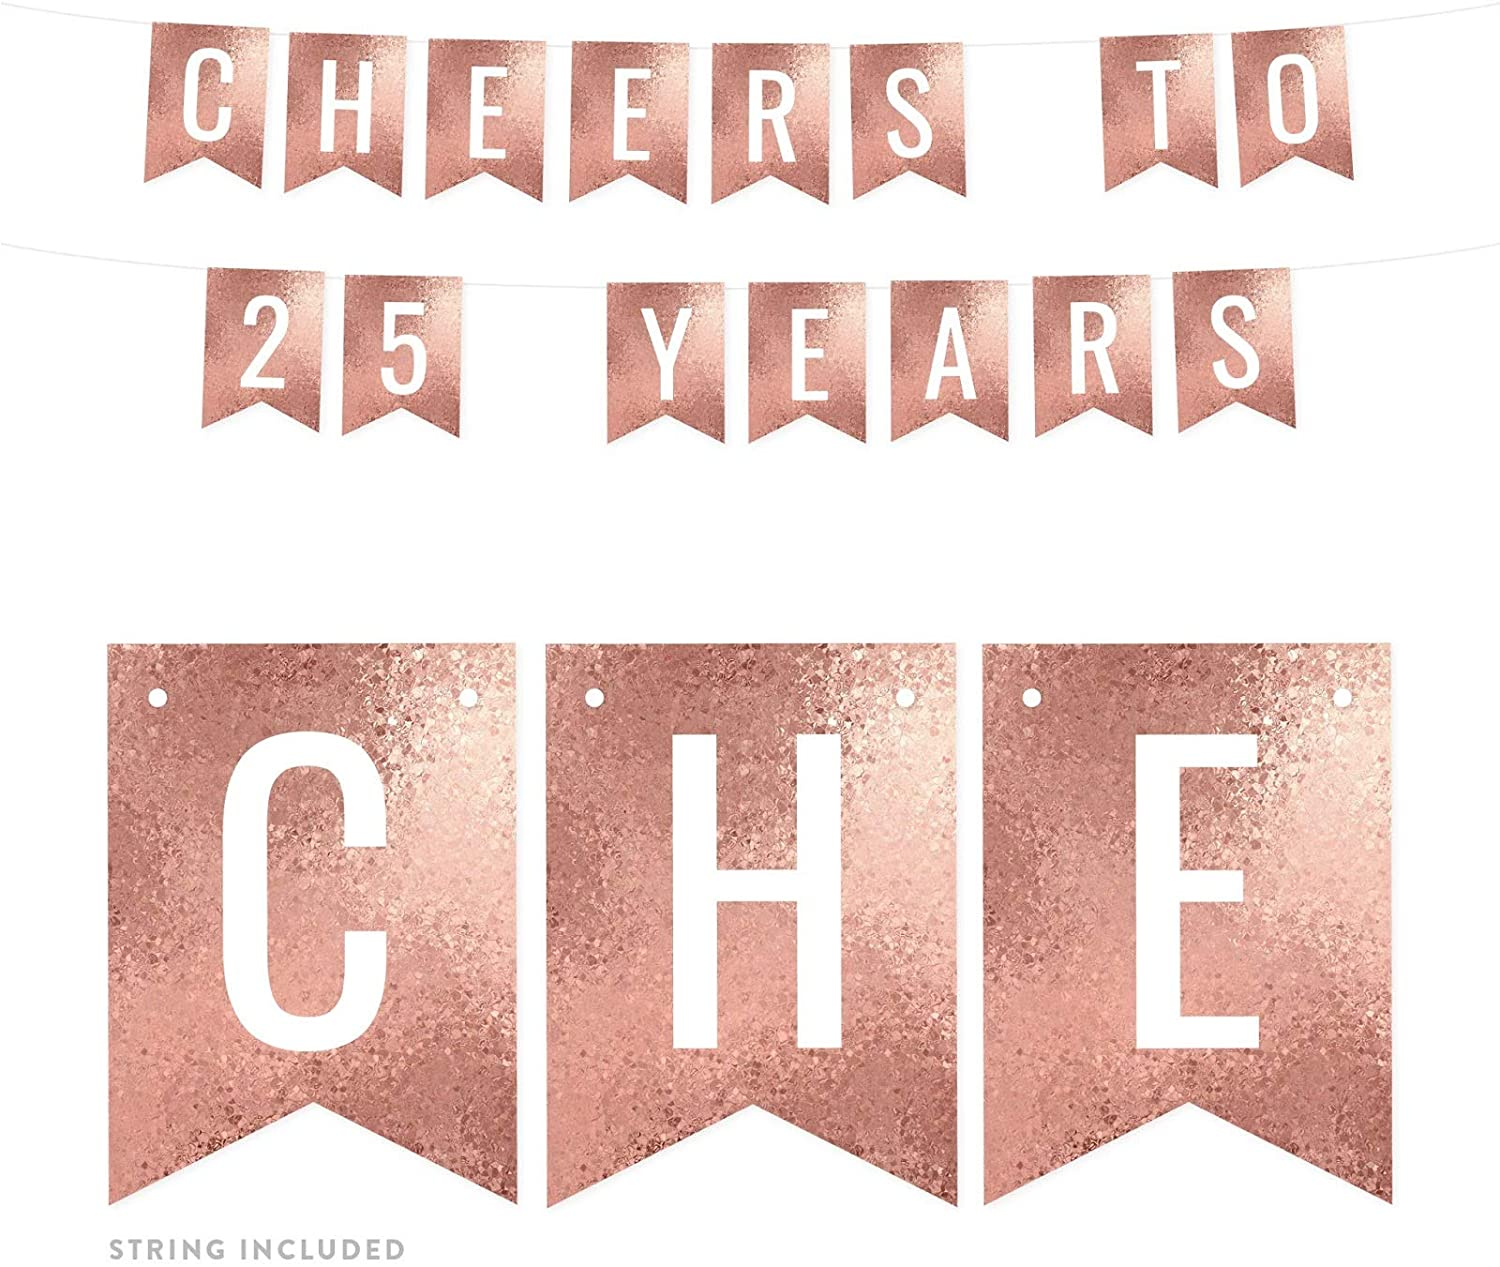 Andaz Press Rose Gold Glitter Mosaic Birthday Party Banner Decorations, Cheers to 25 Years, Approx 5-Feet, 1-Set, 25th Birthday Milestone Colored Hanging Pennant Decor